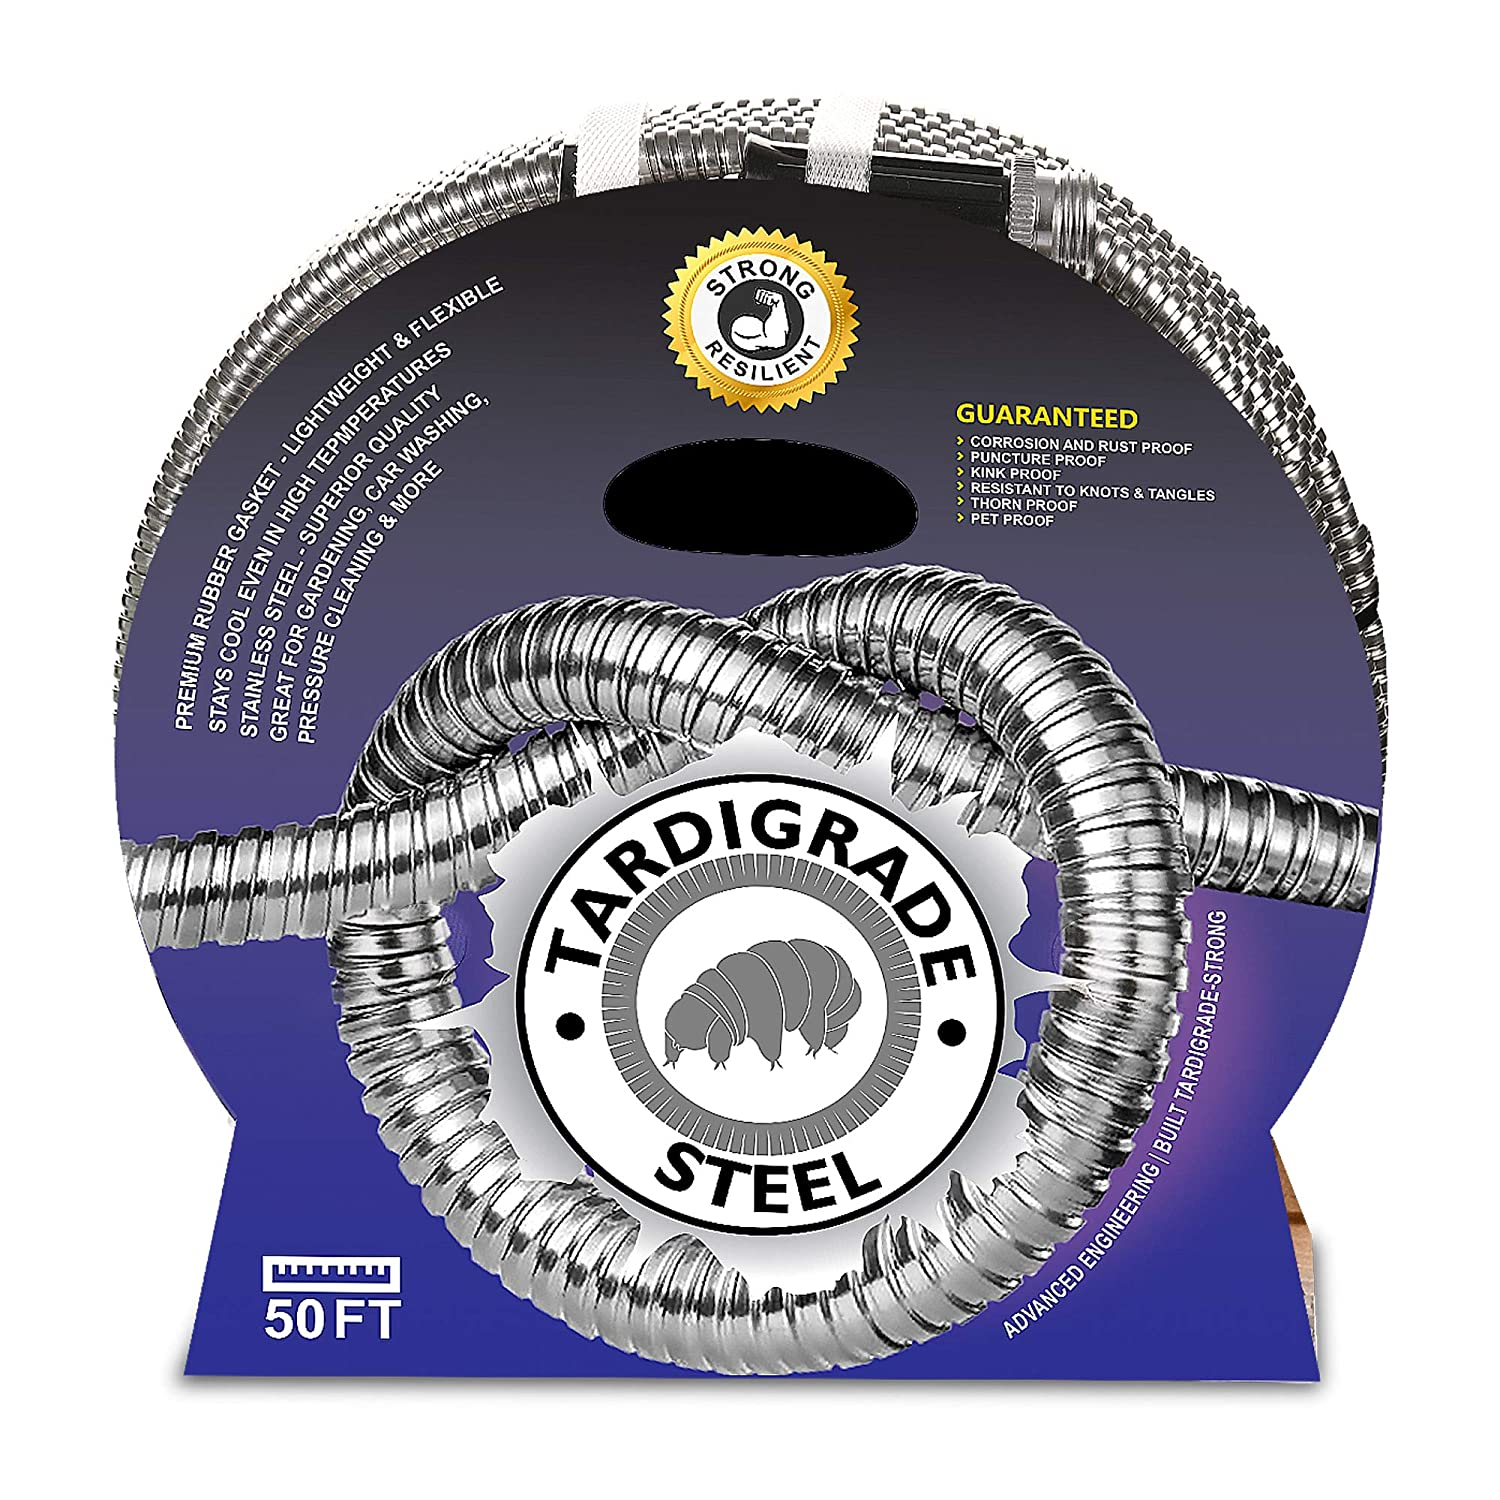 Tardigrade Steel Hose